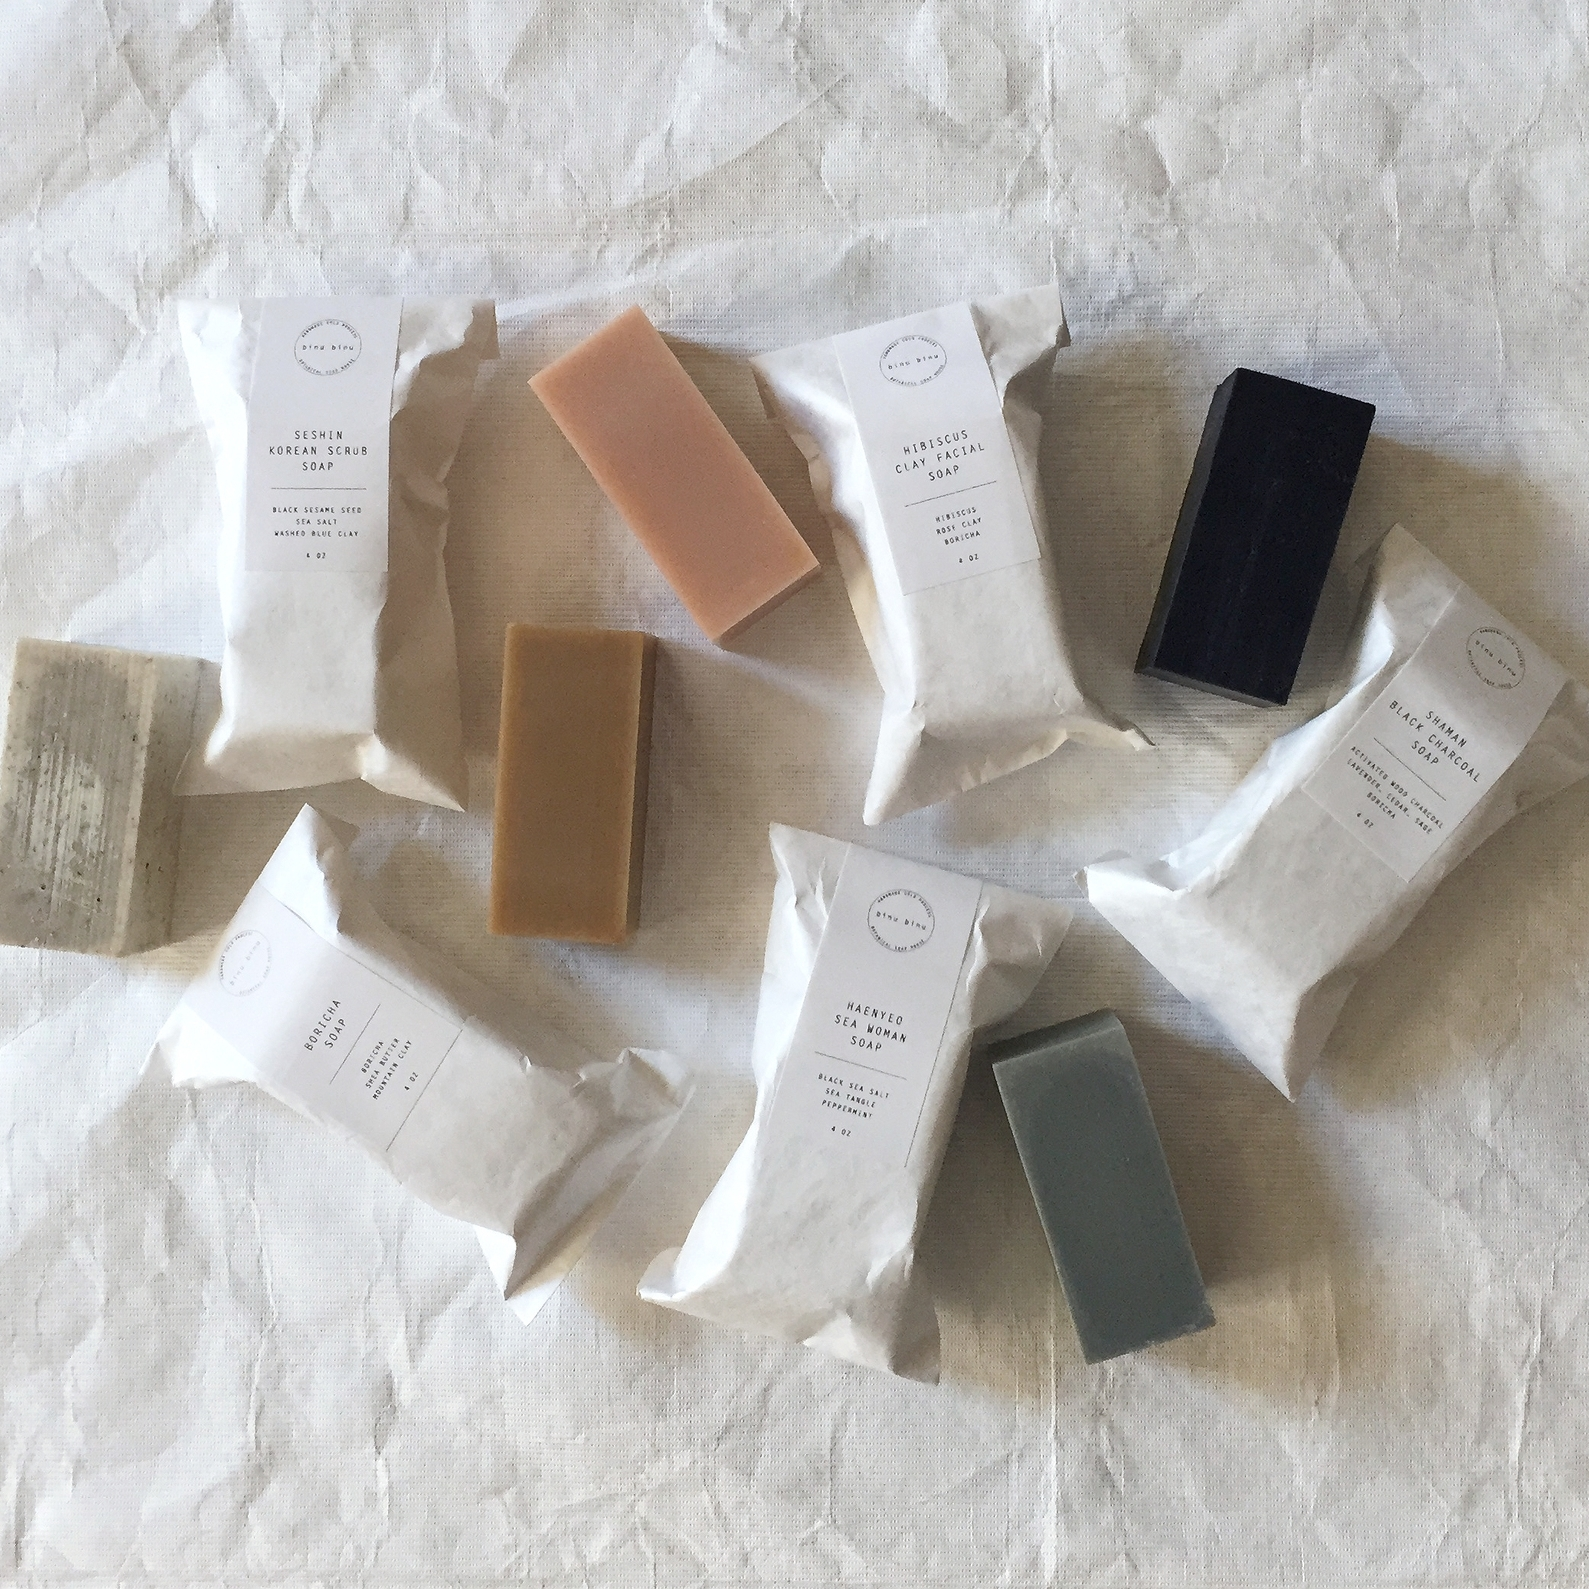 BINU BINU SOAP  : $18-$20   PERFECT FOR : People who wash their faces and/or bodies. All-natural, fragrance-free soaps made with essential oils.   Binu Binu